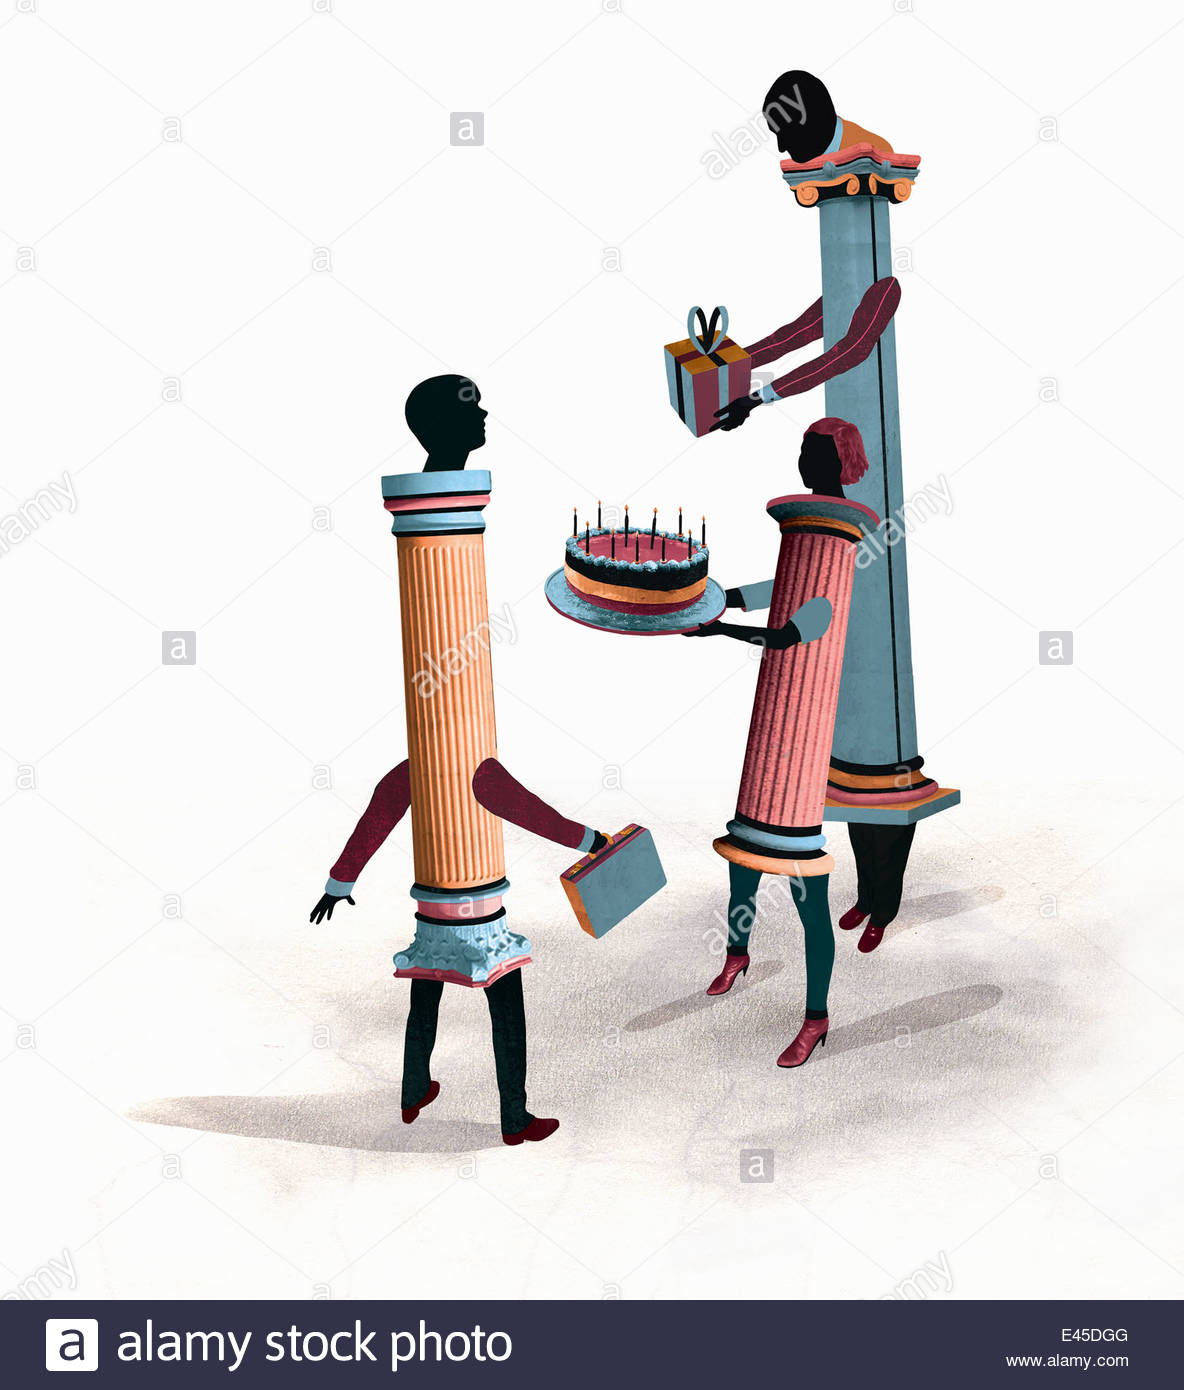 Pedestal business people giving colleague cake and gift - Stock Image